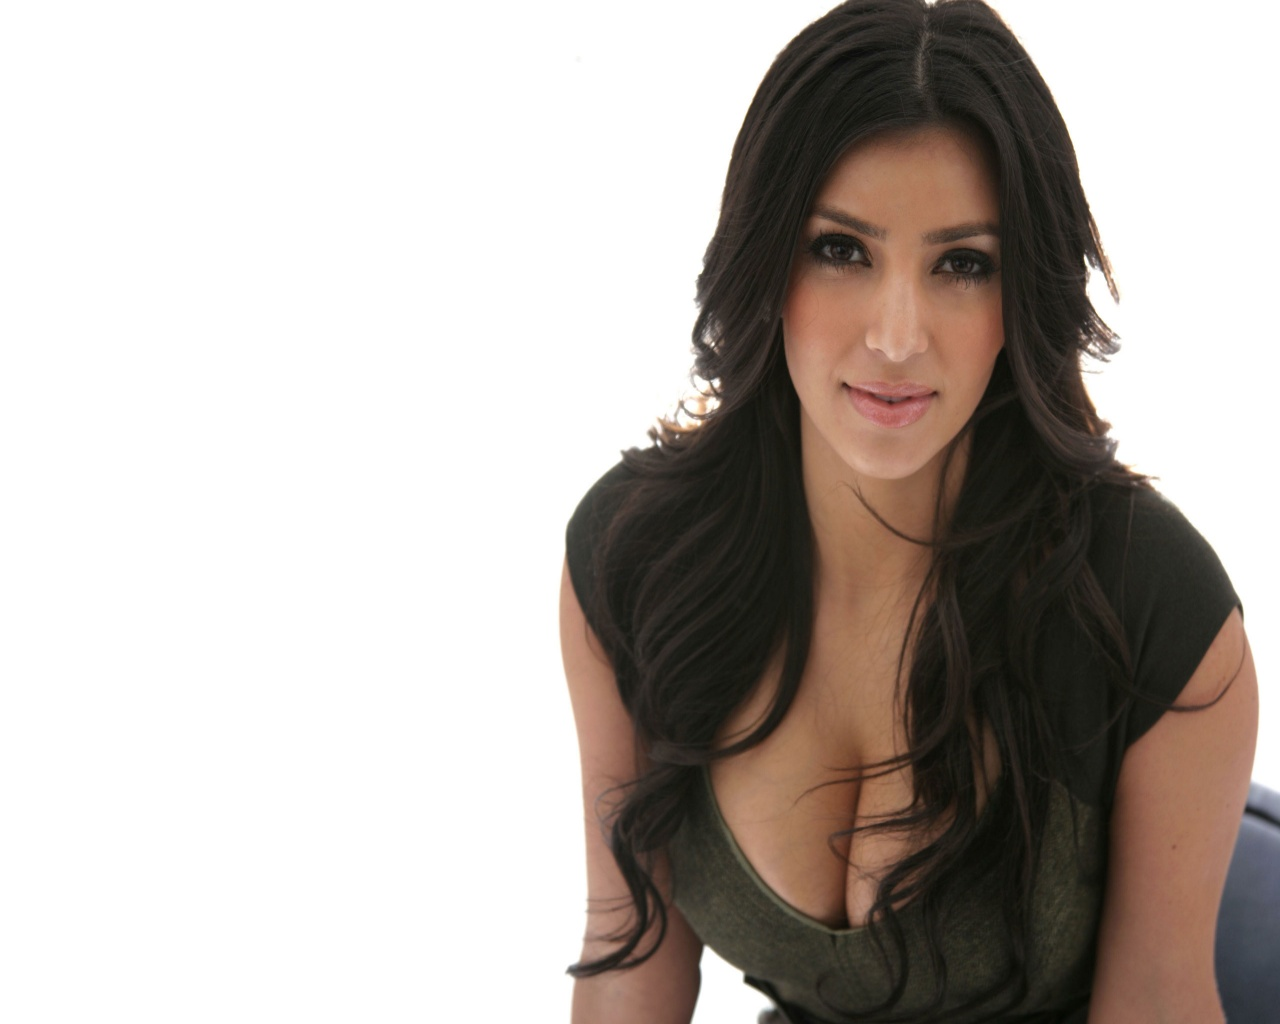 kim kardashian model hot wallpaper 12 fun hungama forsweetangels 1280x1024